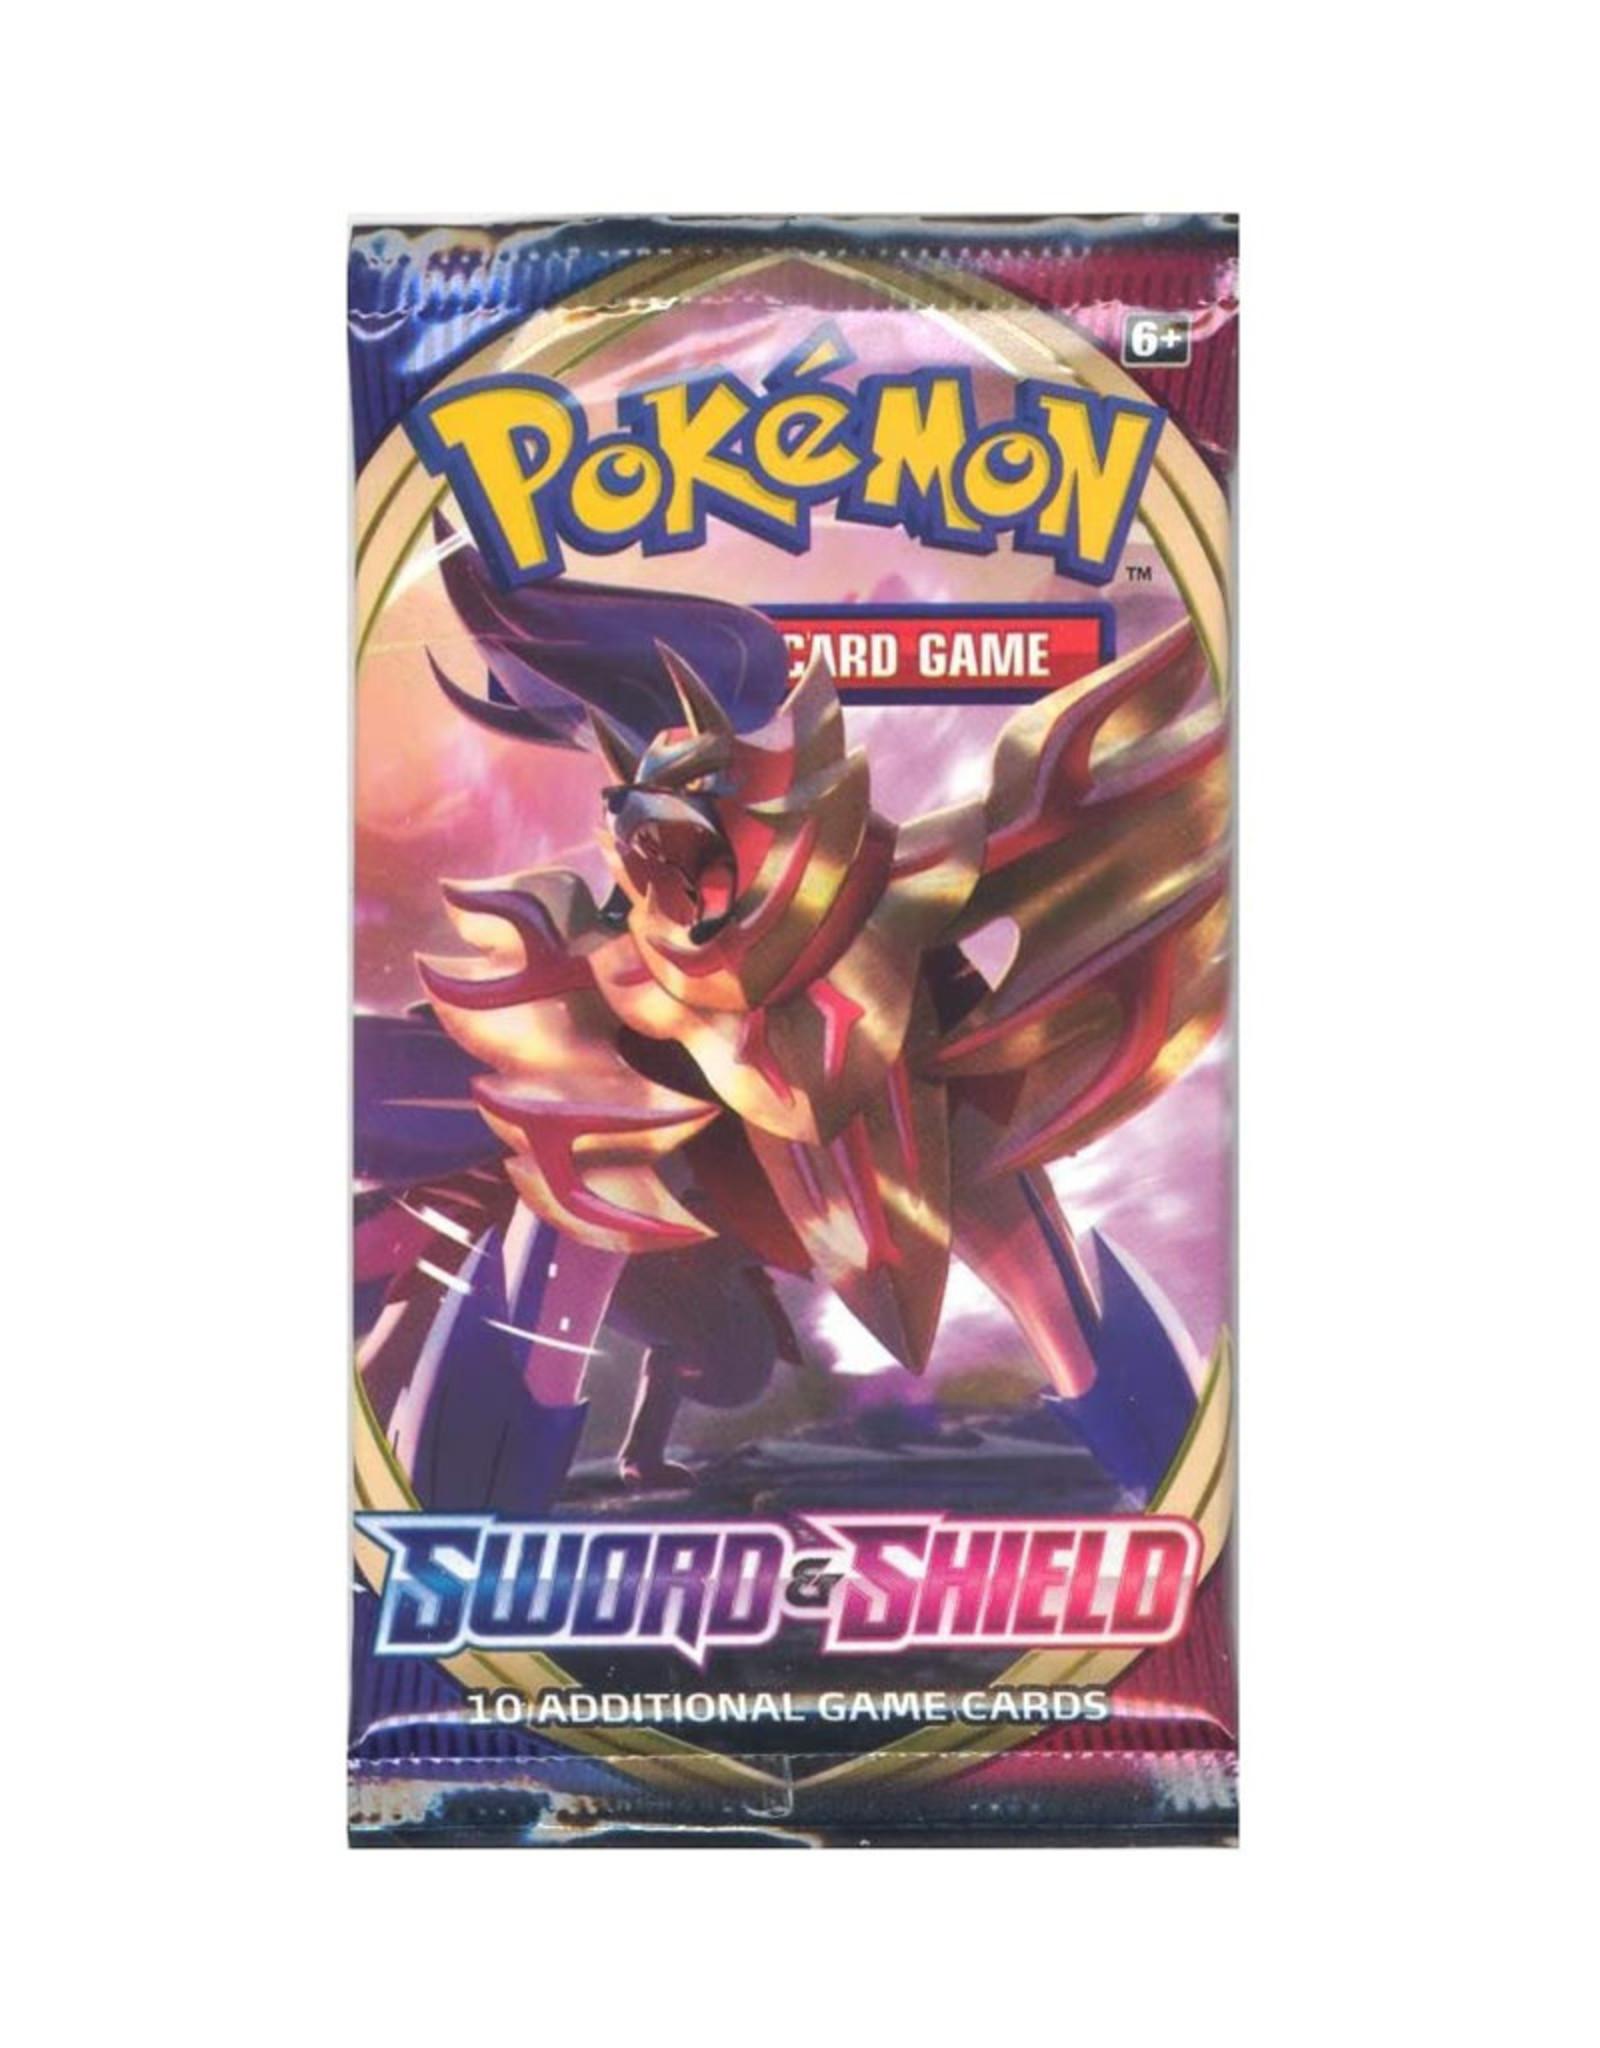 Pokemon Pokemon Sword and Shield Booster